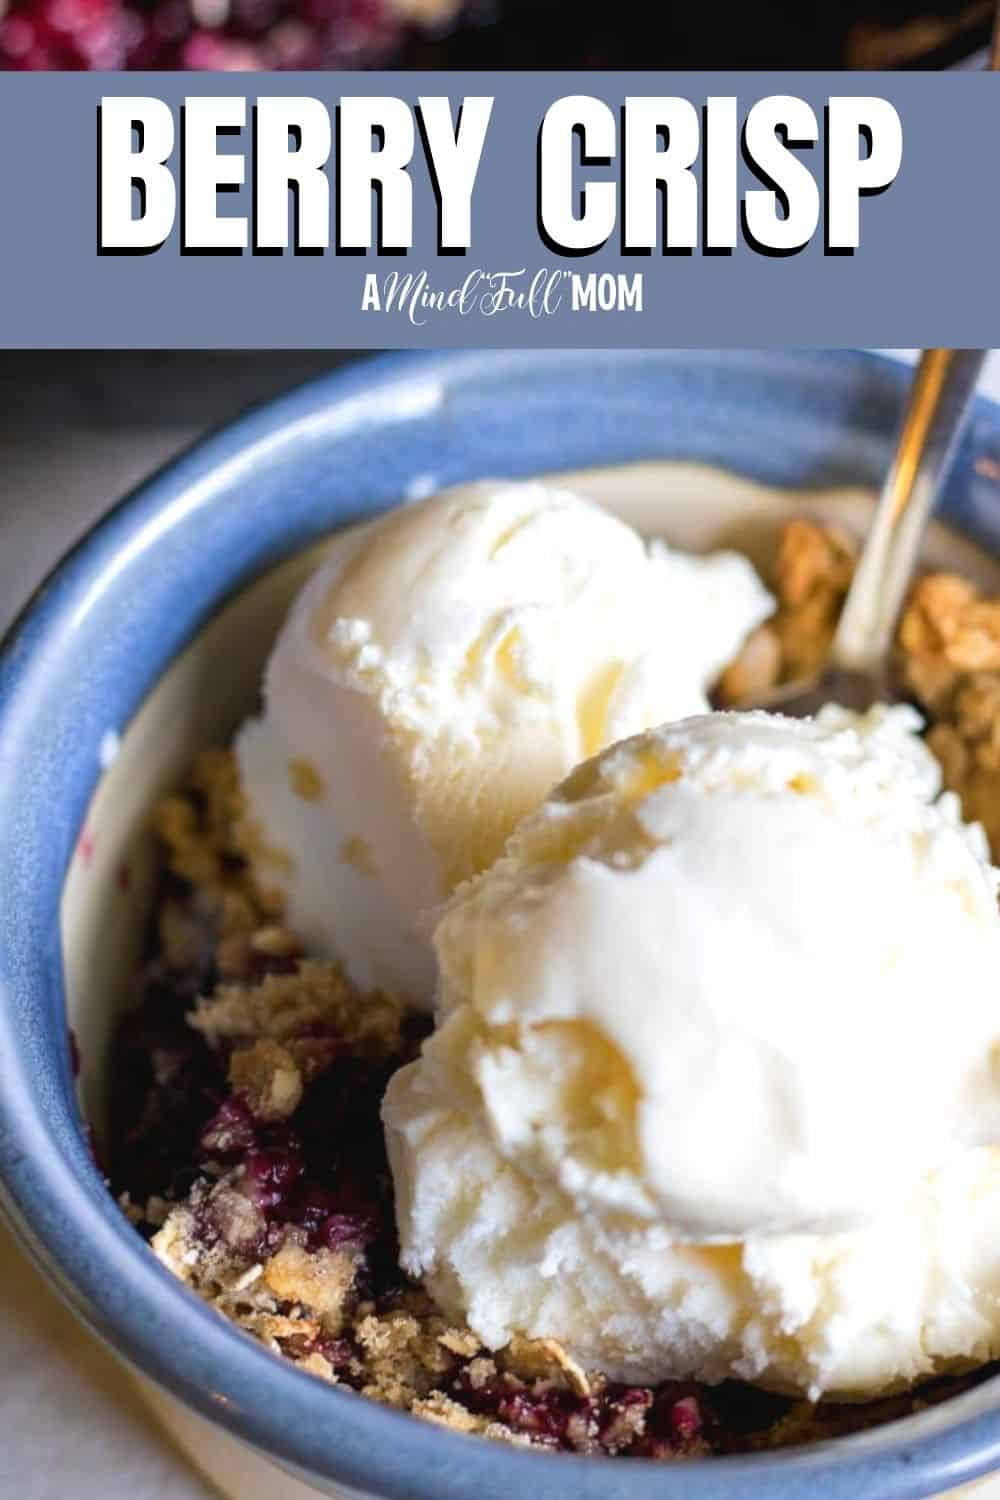 Made with juicy, plump berries and a buttery oat topping, this Berry Crisp is one easy and satisfying summer dessert.